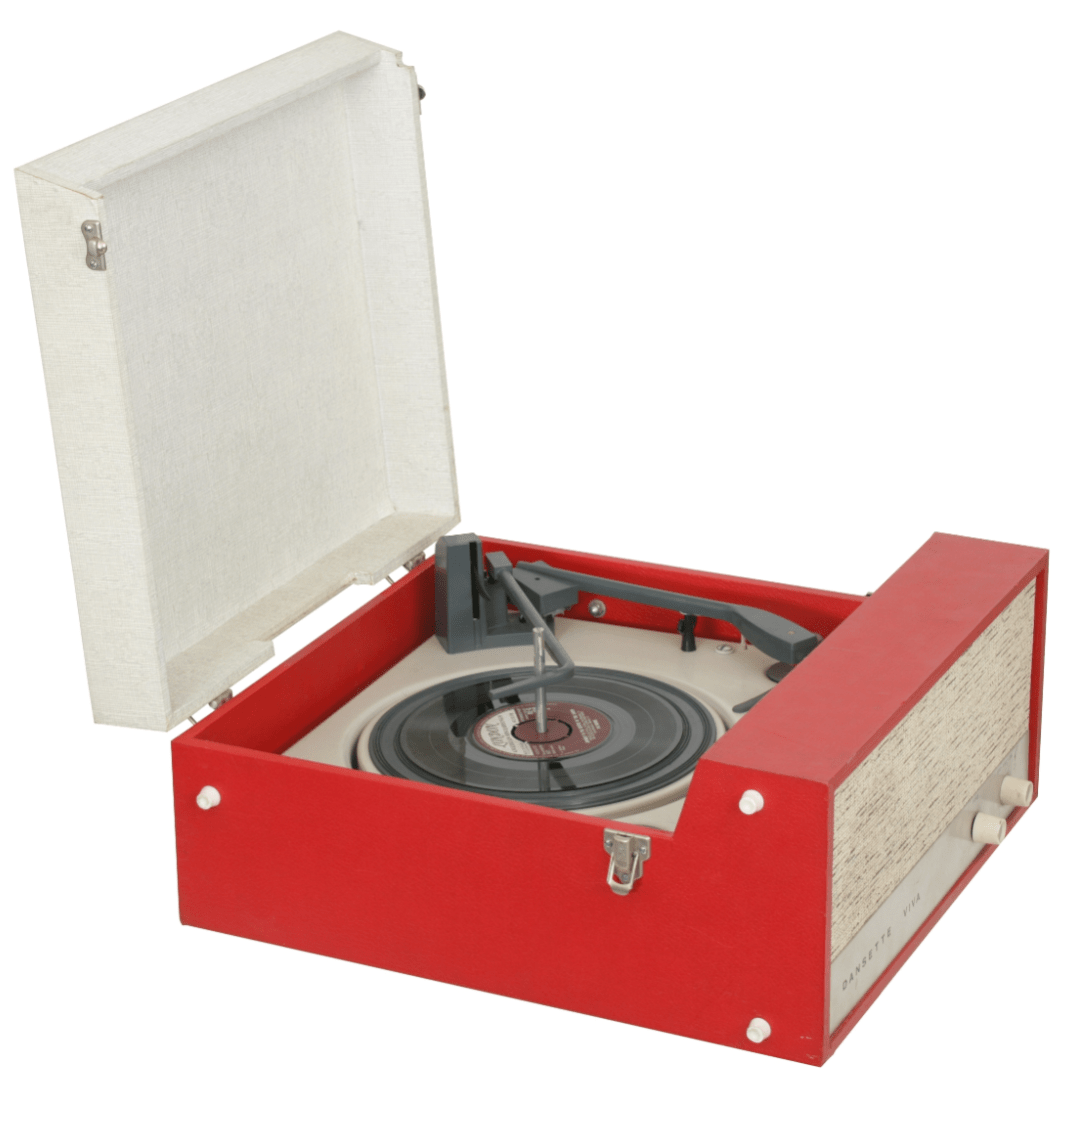 Dansette Record Player - guide